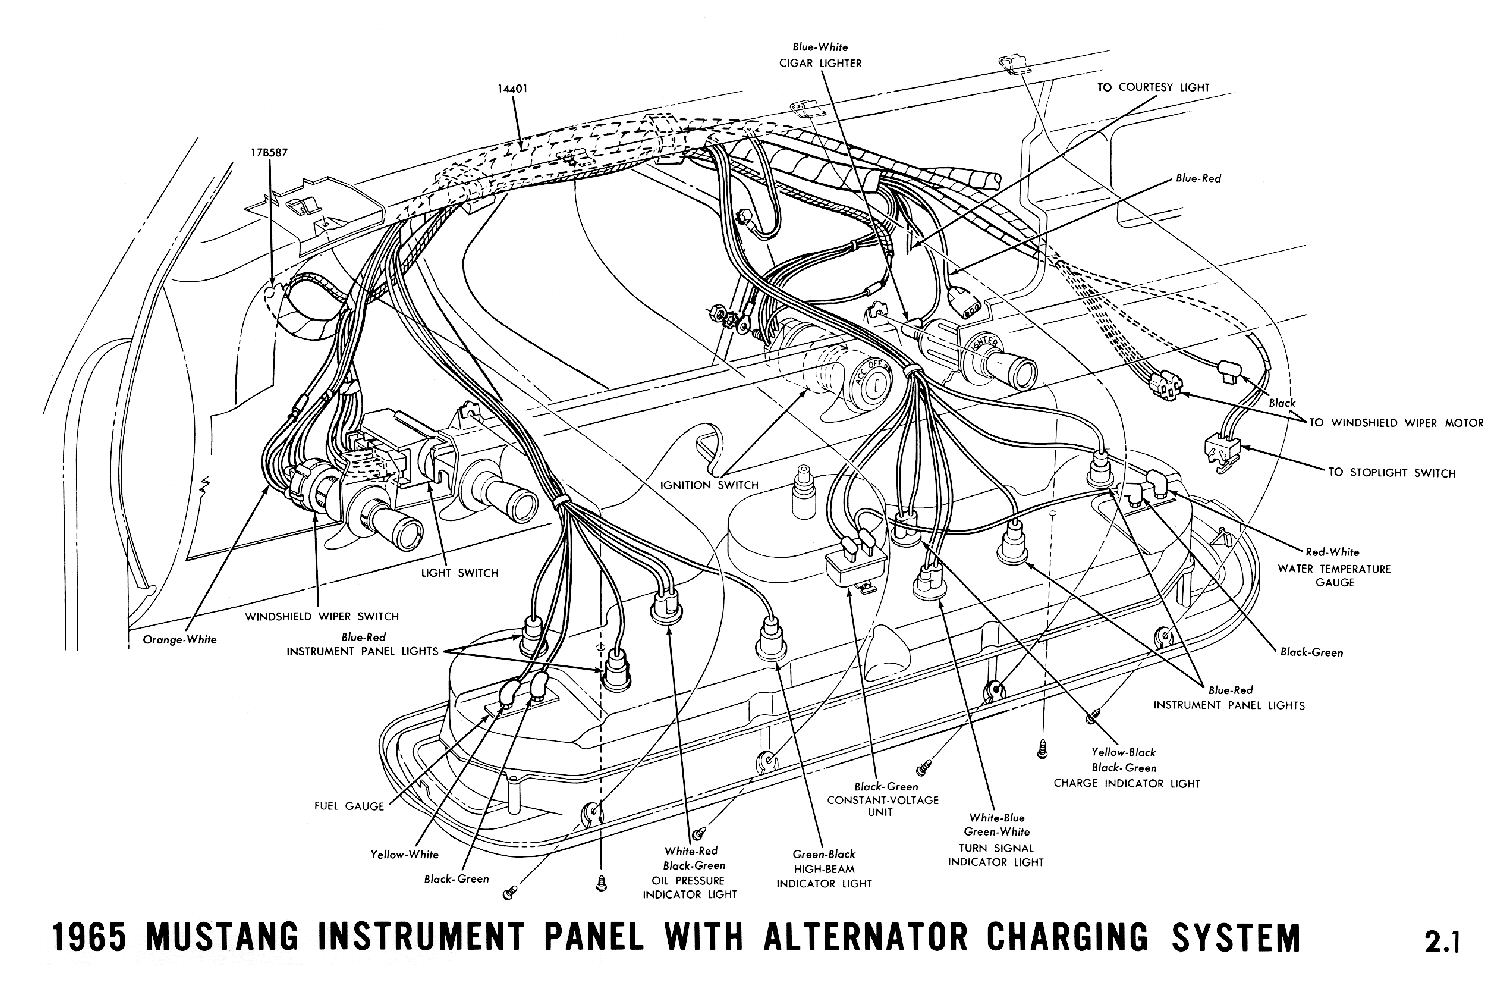 1965a 1965 mustang wiring diagrams average joe restoration 1965 ford mustang wiring diagrams at sewacar.co